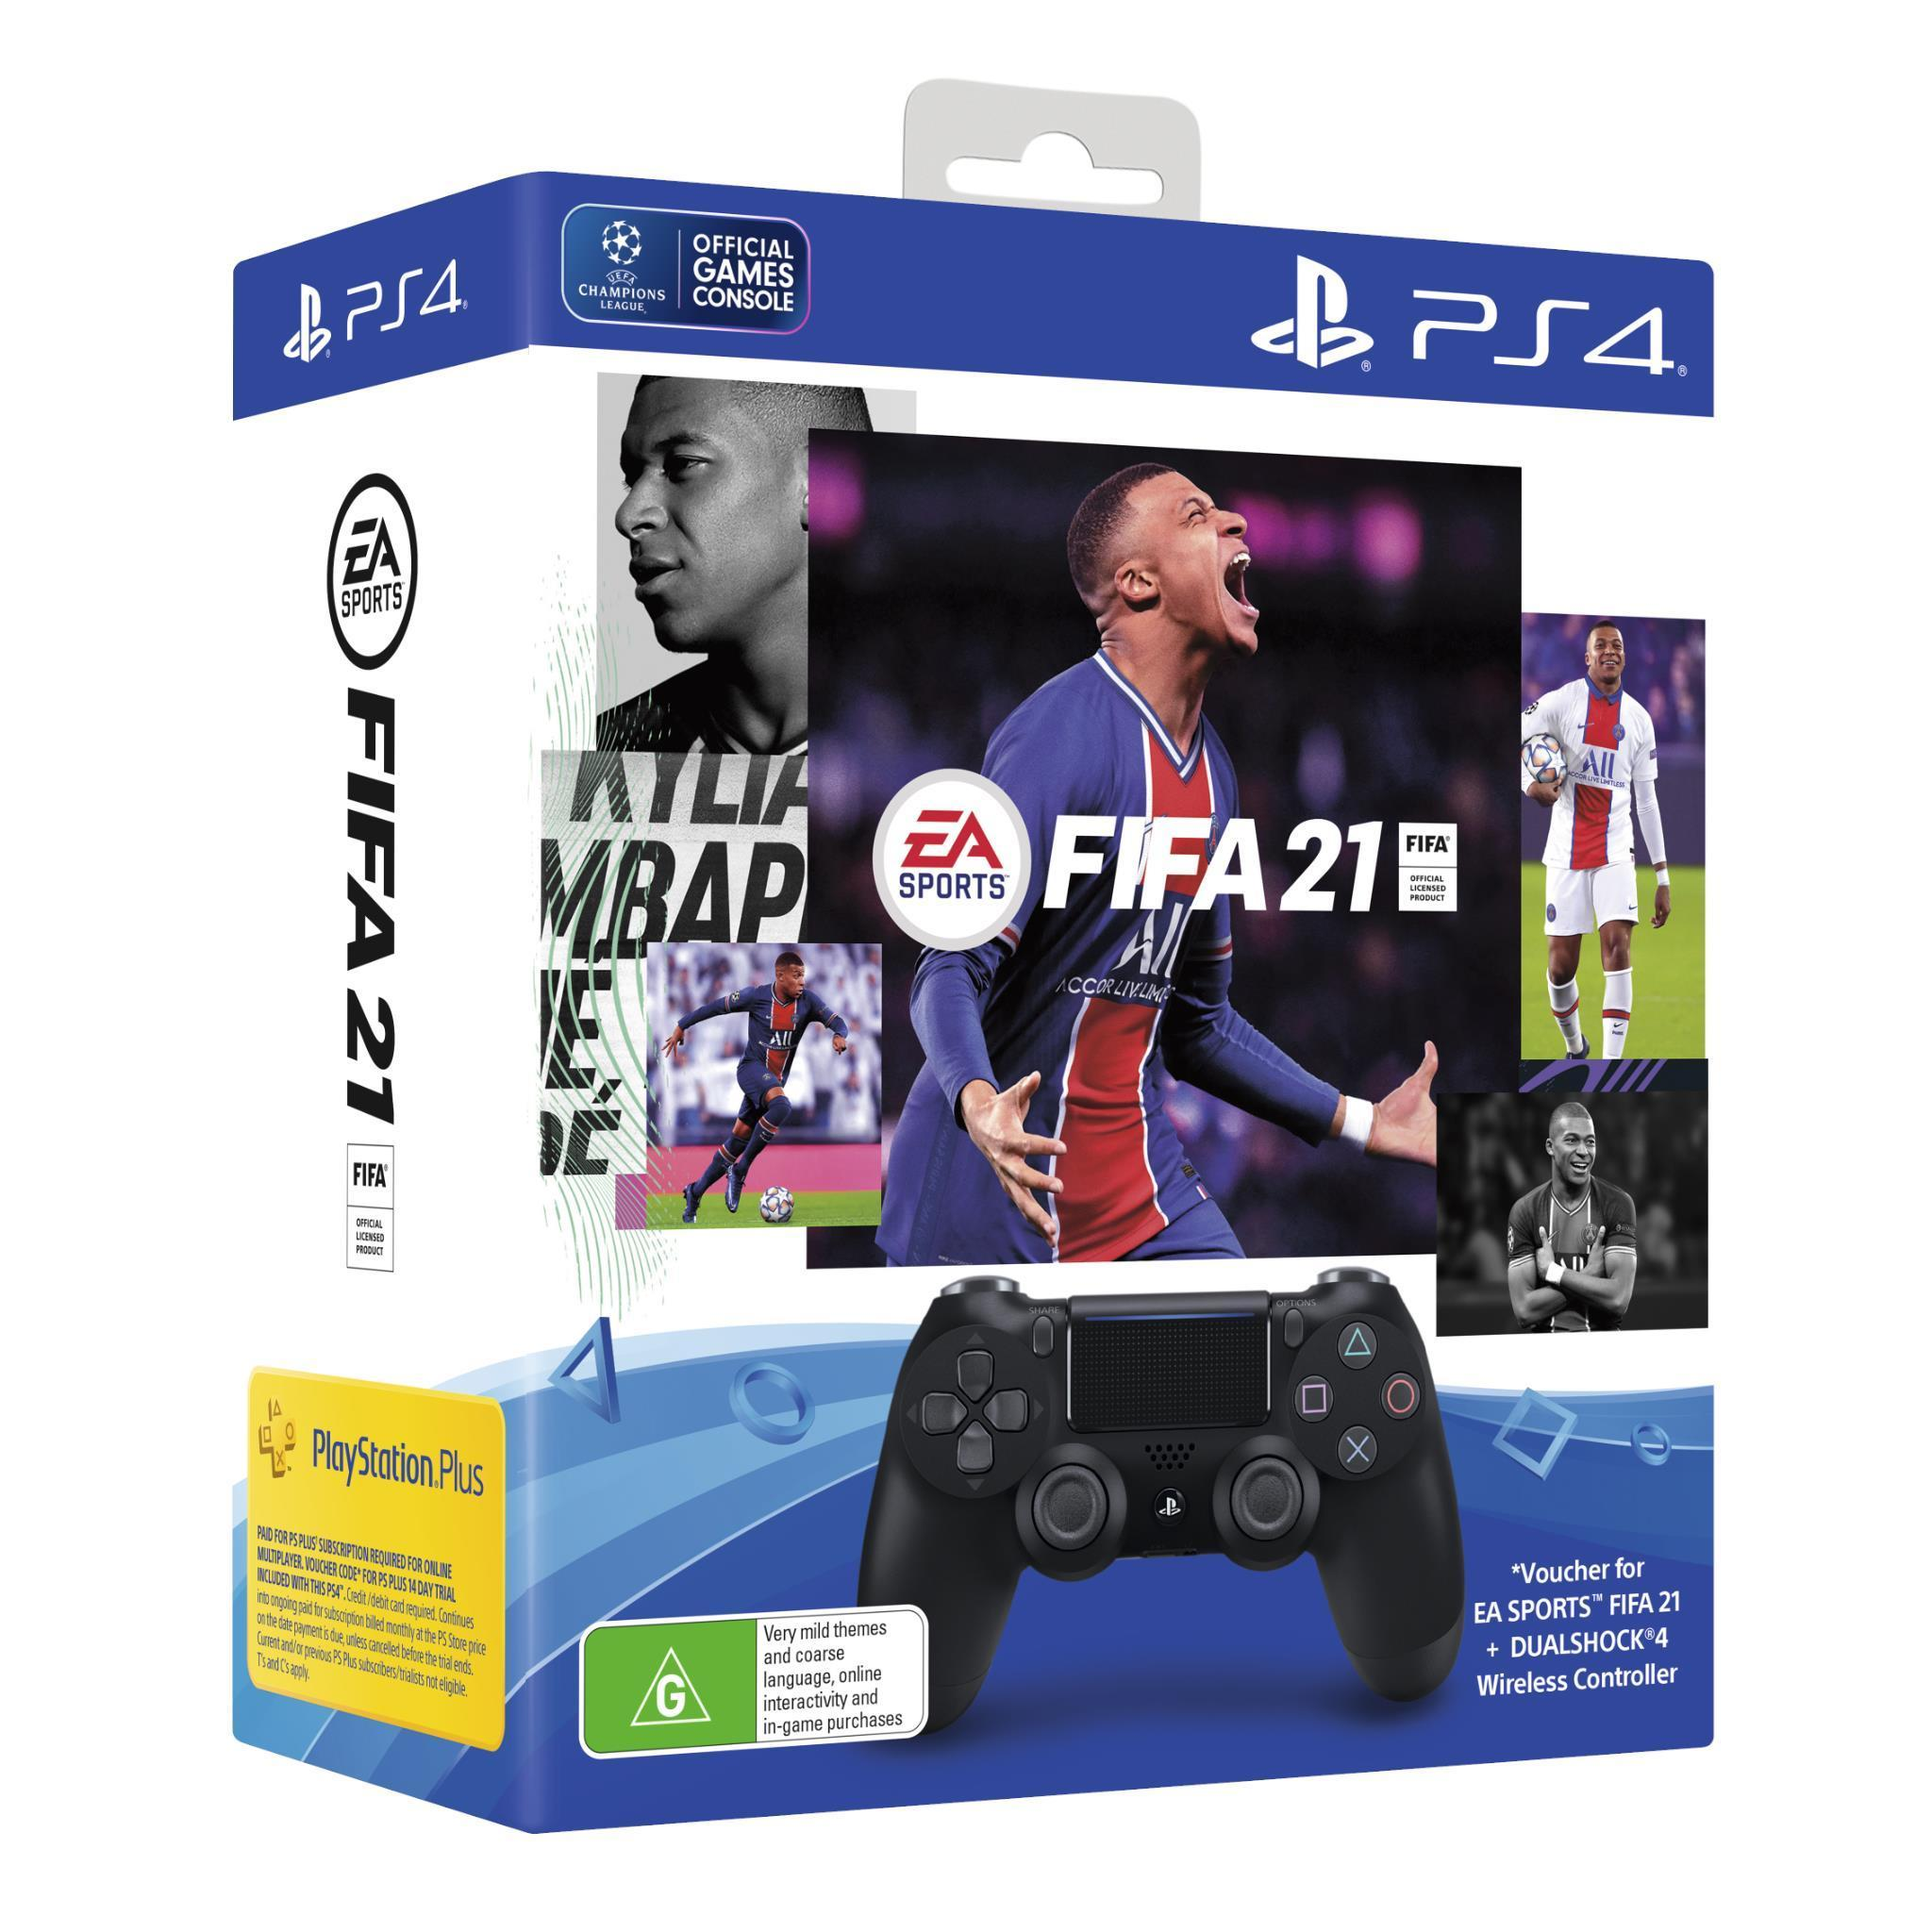 PS4 PlayStation 4 Dualshock 4 Wireless Controller FIFA 21 Bundle